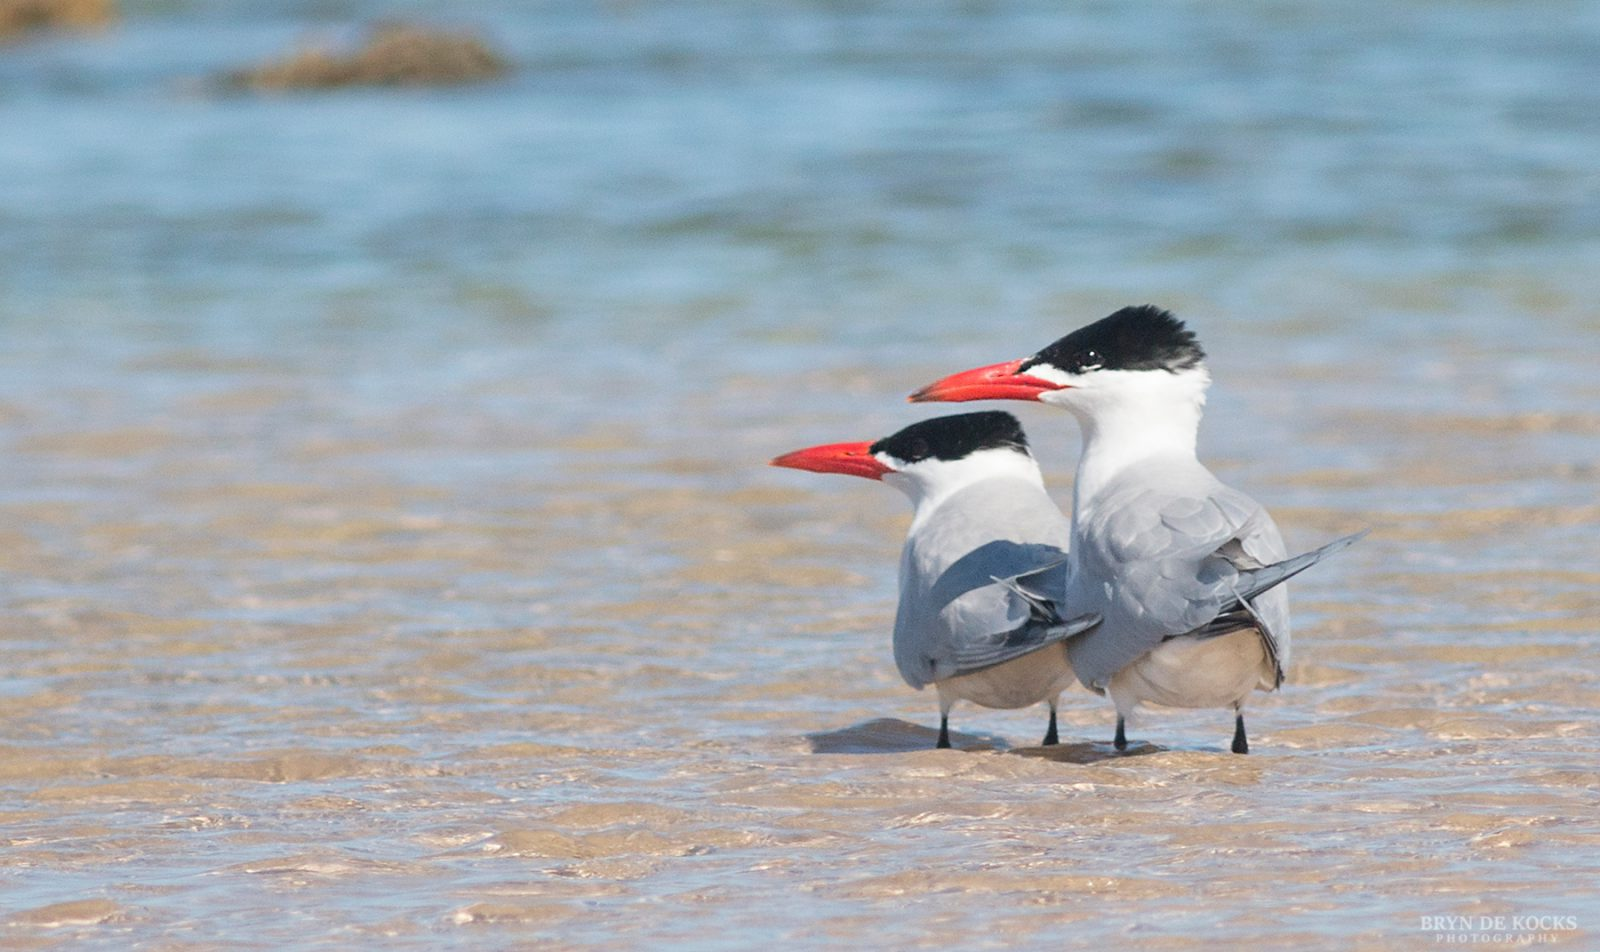 Caspian Terns at Cape Recife